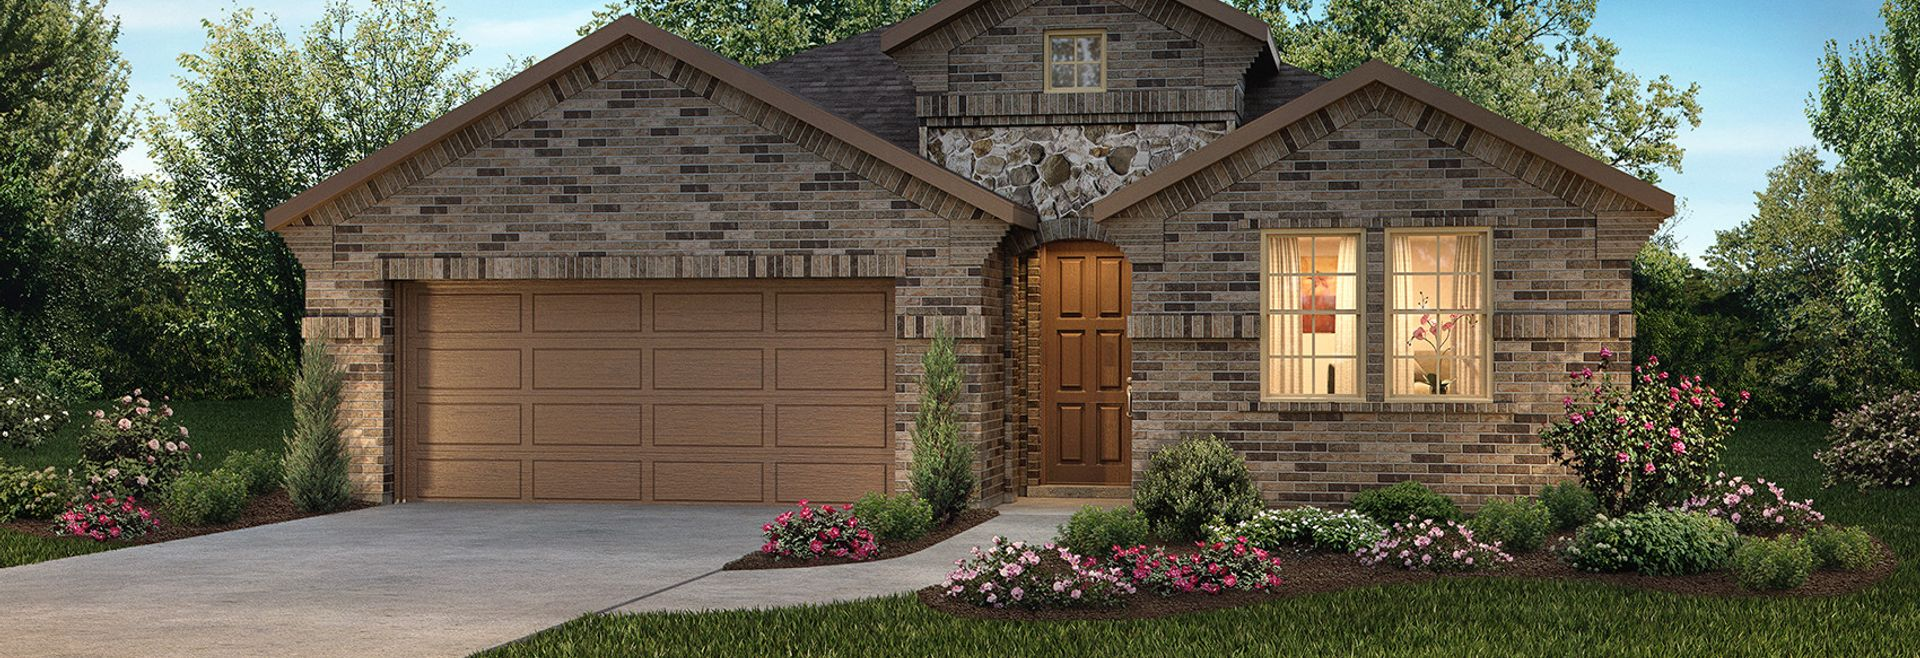 Balmoral by Shea Homes in Humble, TX